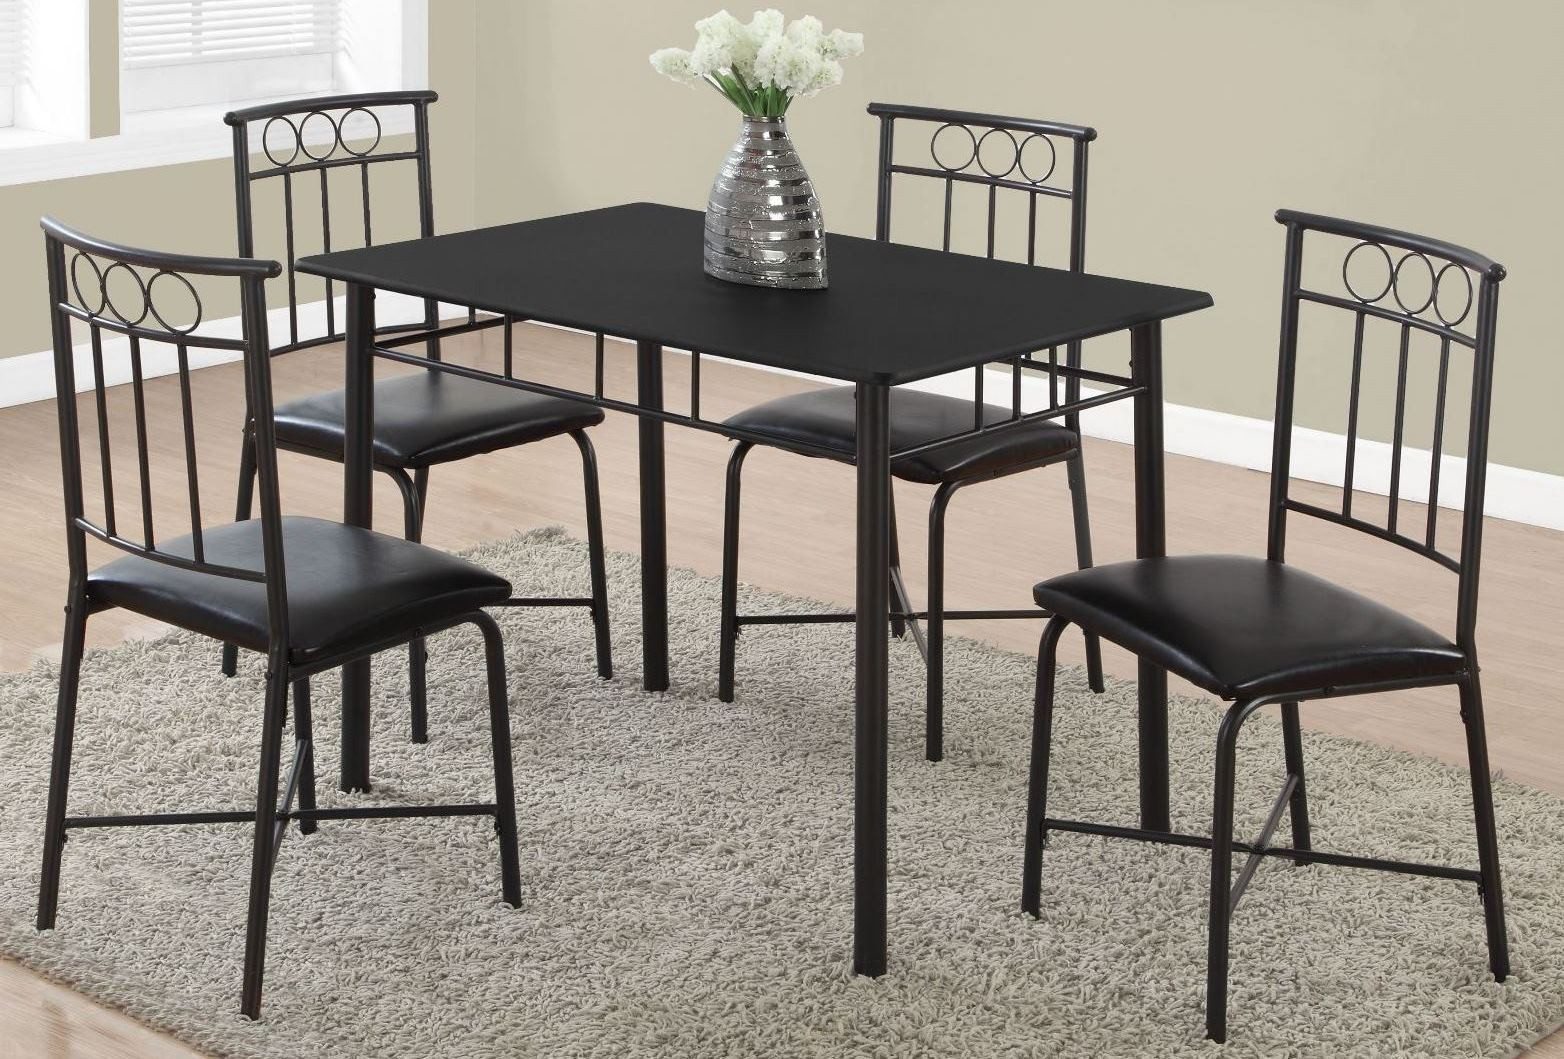 Black metal 5 piece dining room set 1018 monarch for 5 piece dining set